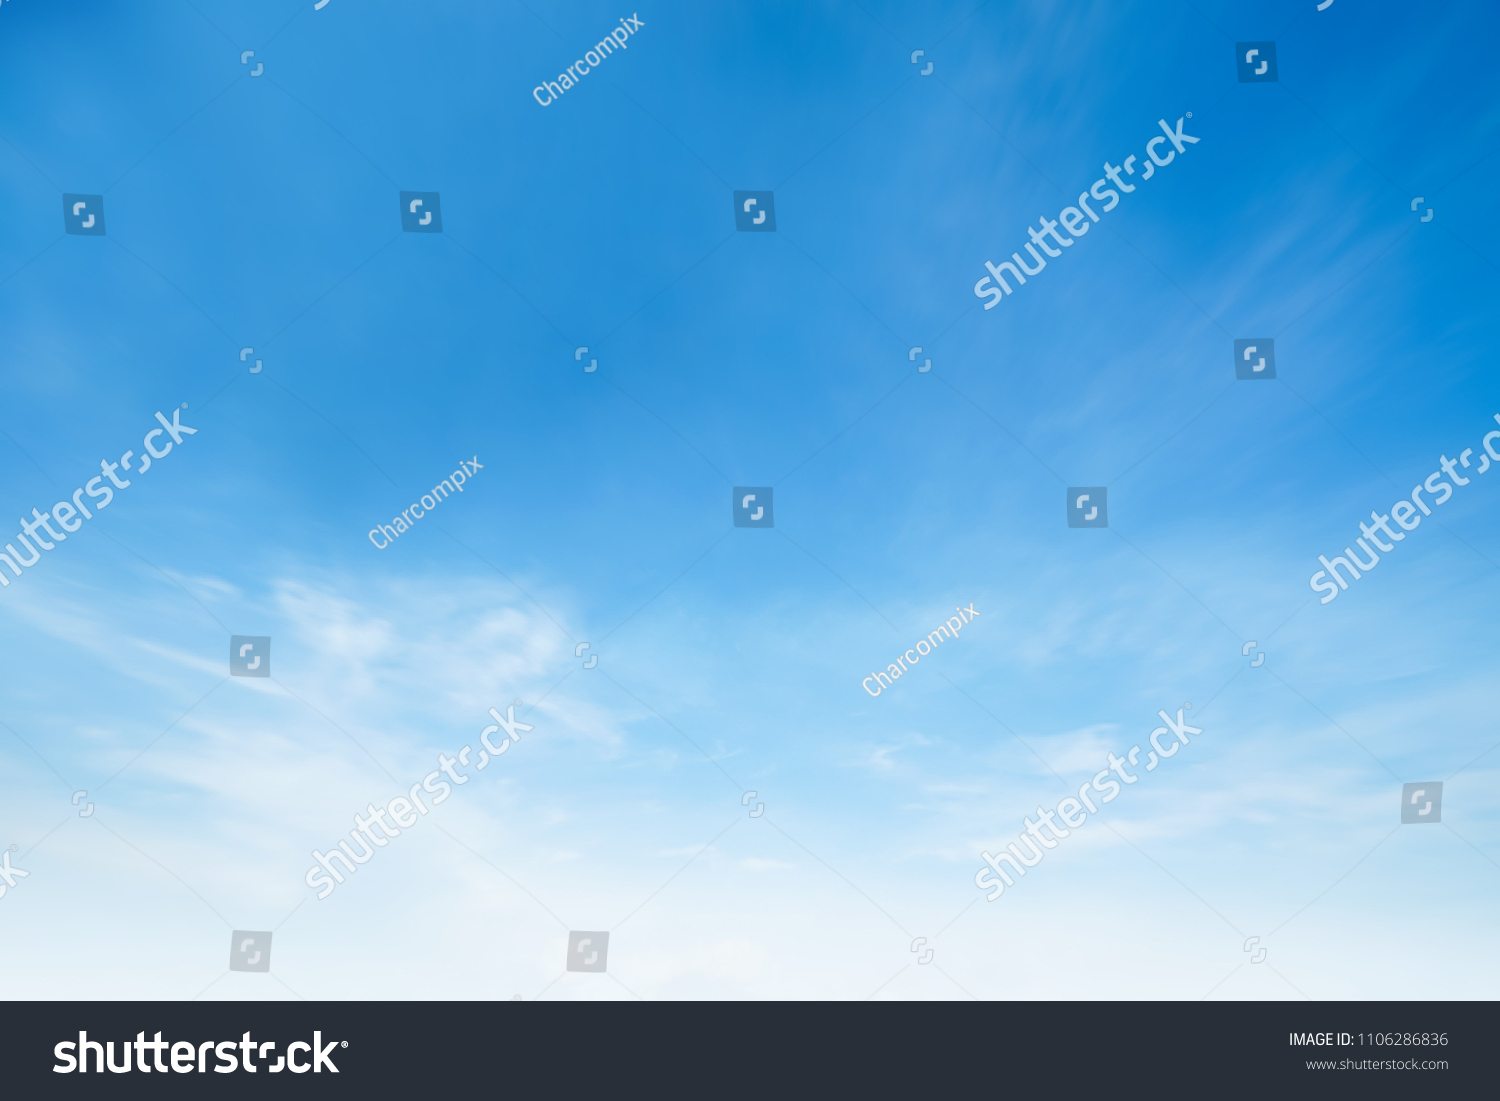 Cloud sky sunrise during morning background. Blue pastel heaven,soft focus lens flare sunlight. Abstract blurred white cyan gradient of peaceful nature. Open view windows beautiful summer spring #1106286836